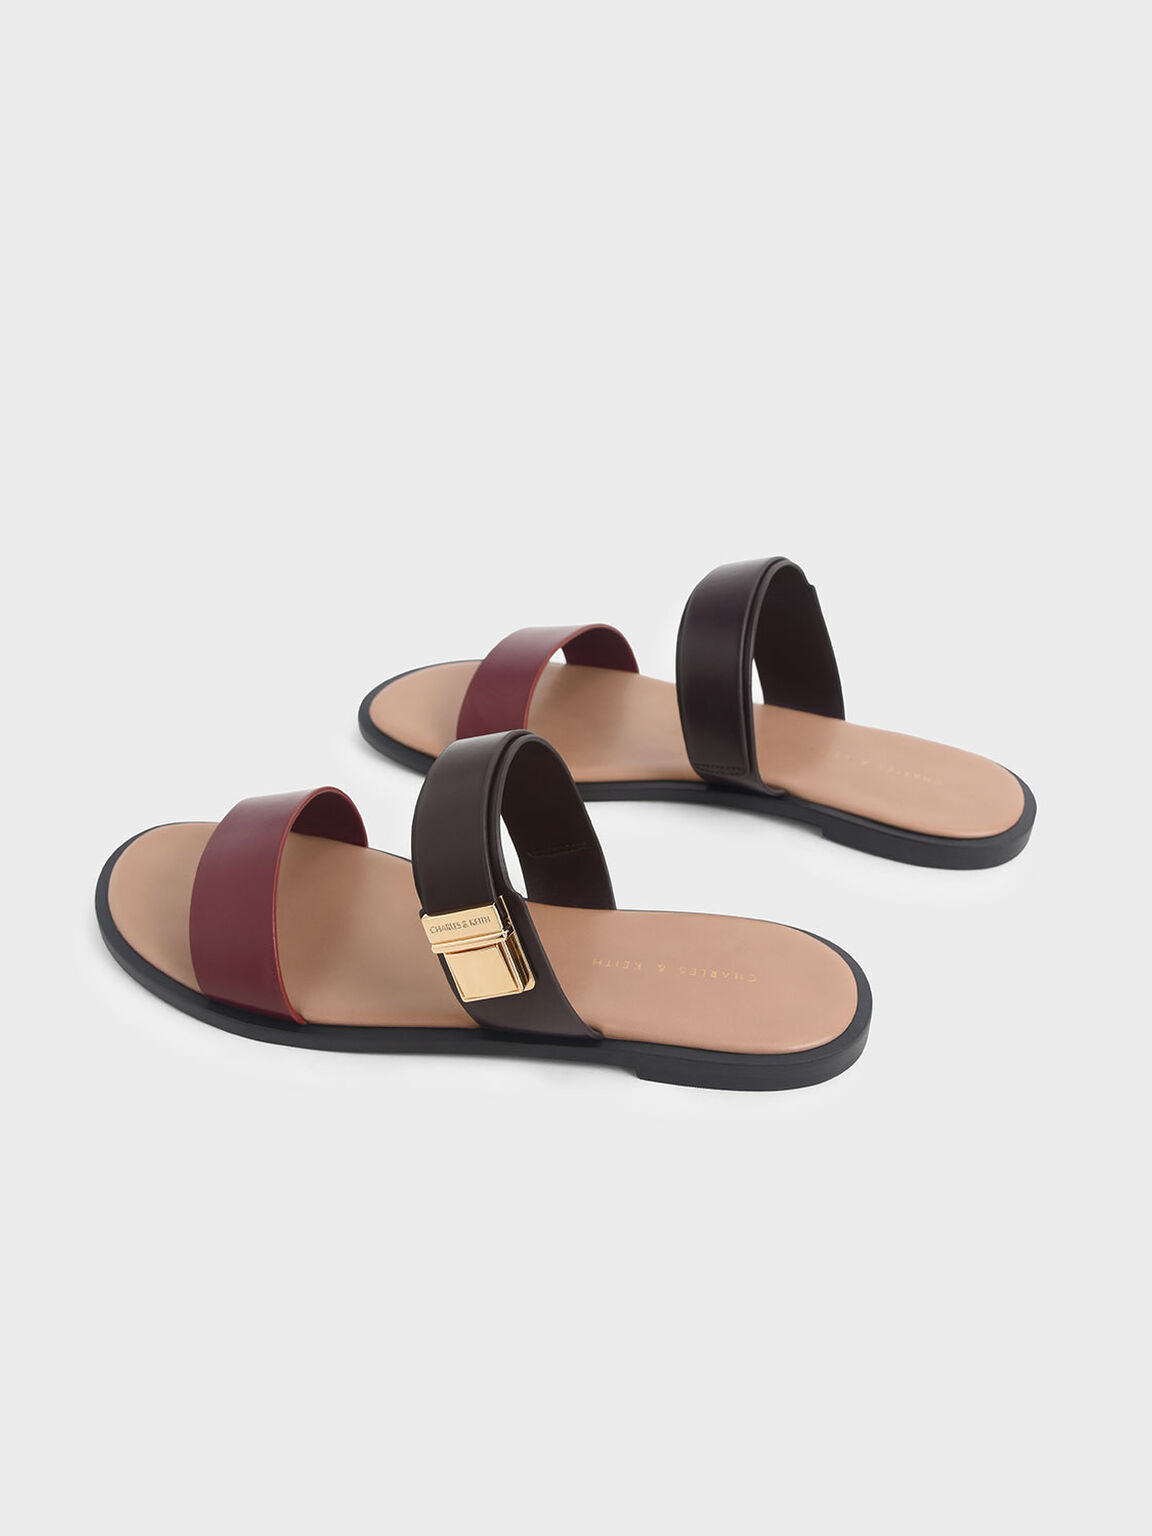 Buckle Double Strap Slide Sandals, Burgundy, hi-res